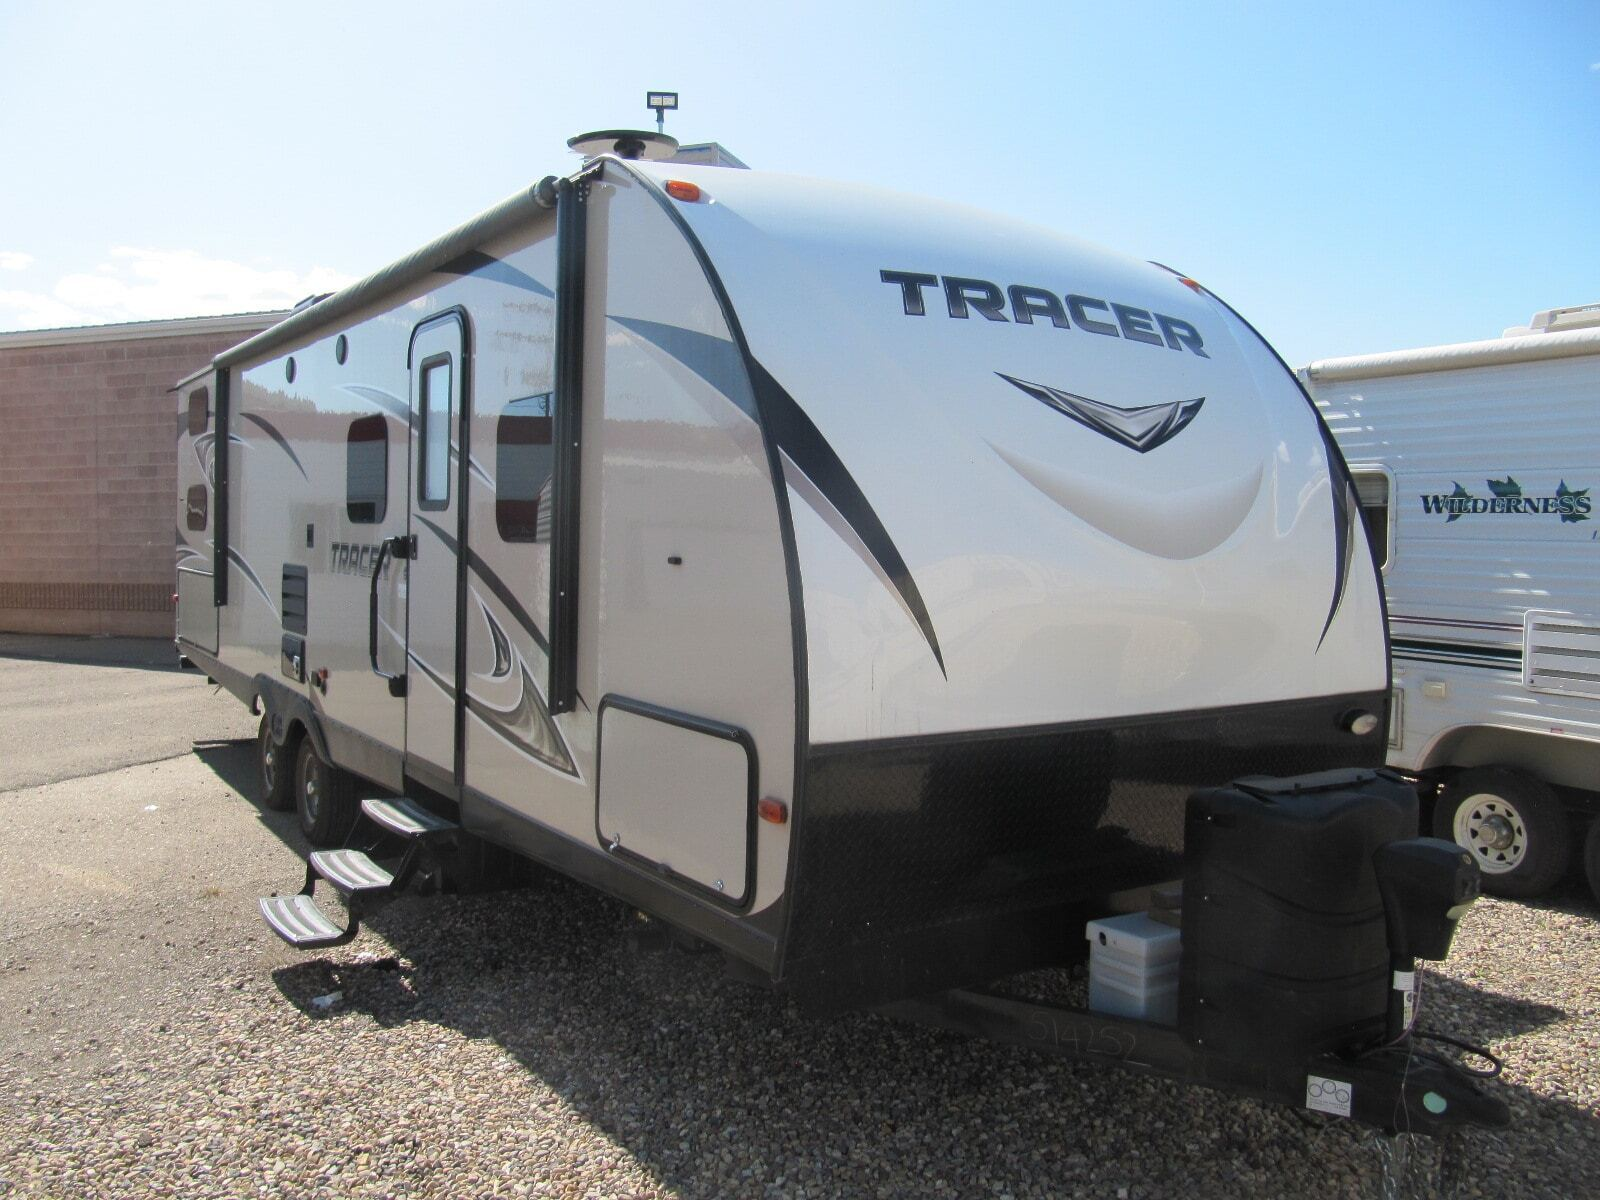 2018 Tracer by Prime Time Manufacturing 291BR - (1045FLAA) Main Image